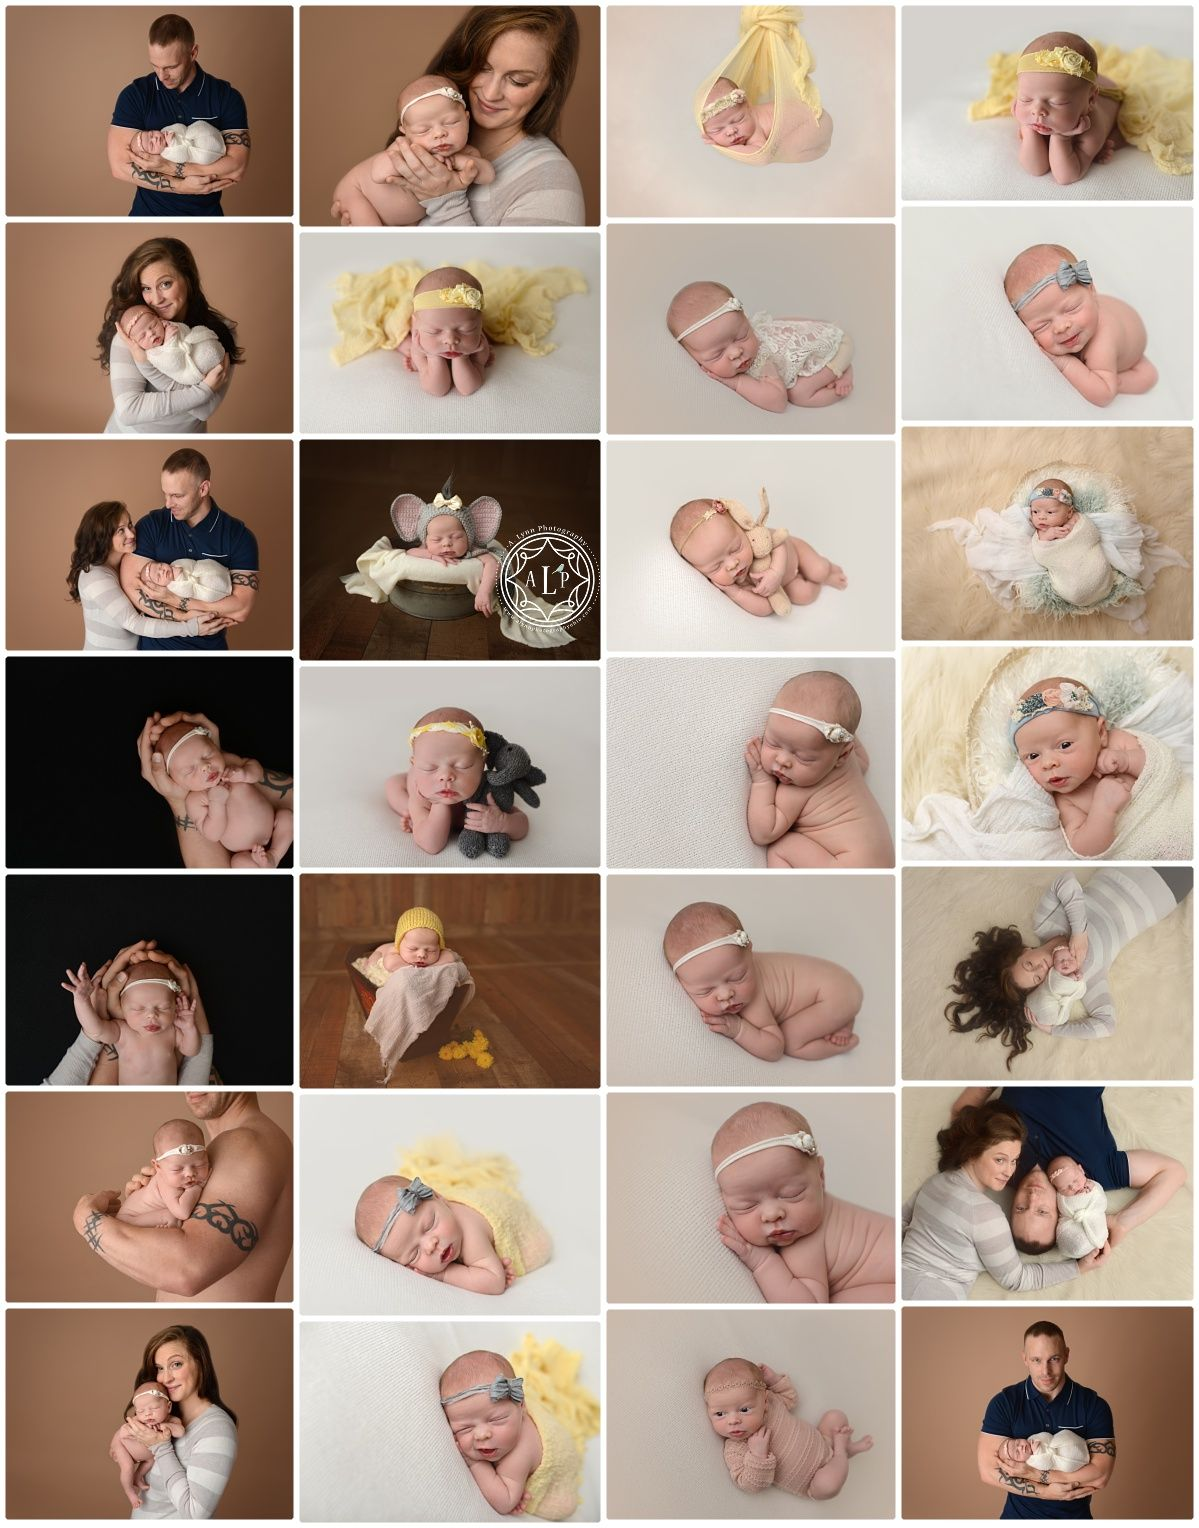 Adult baby gallery